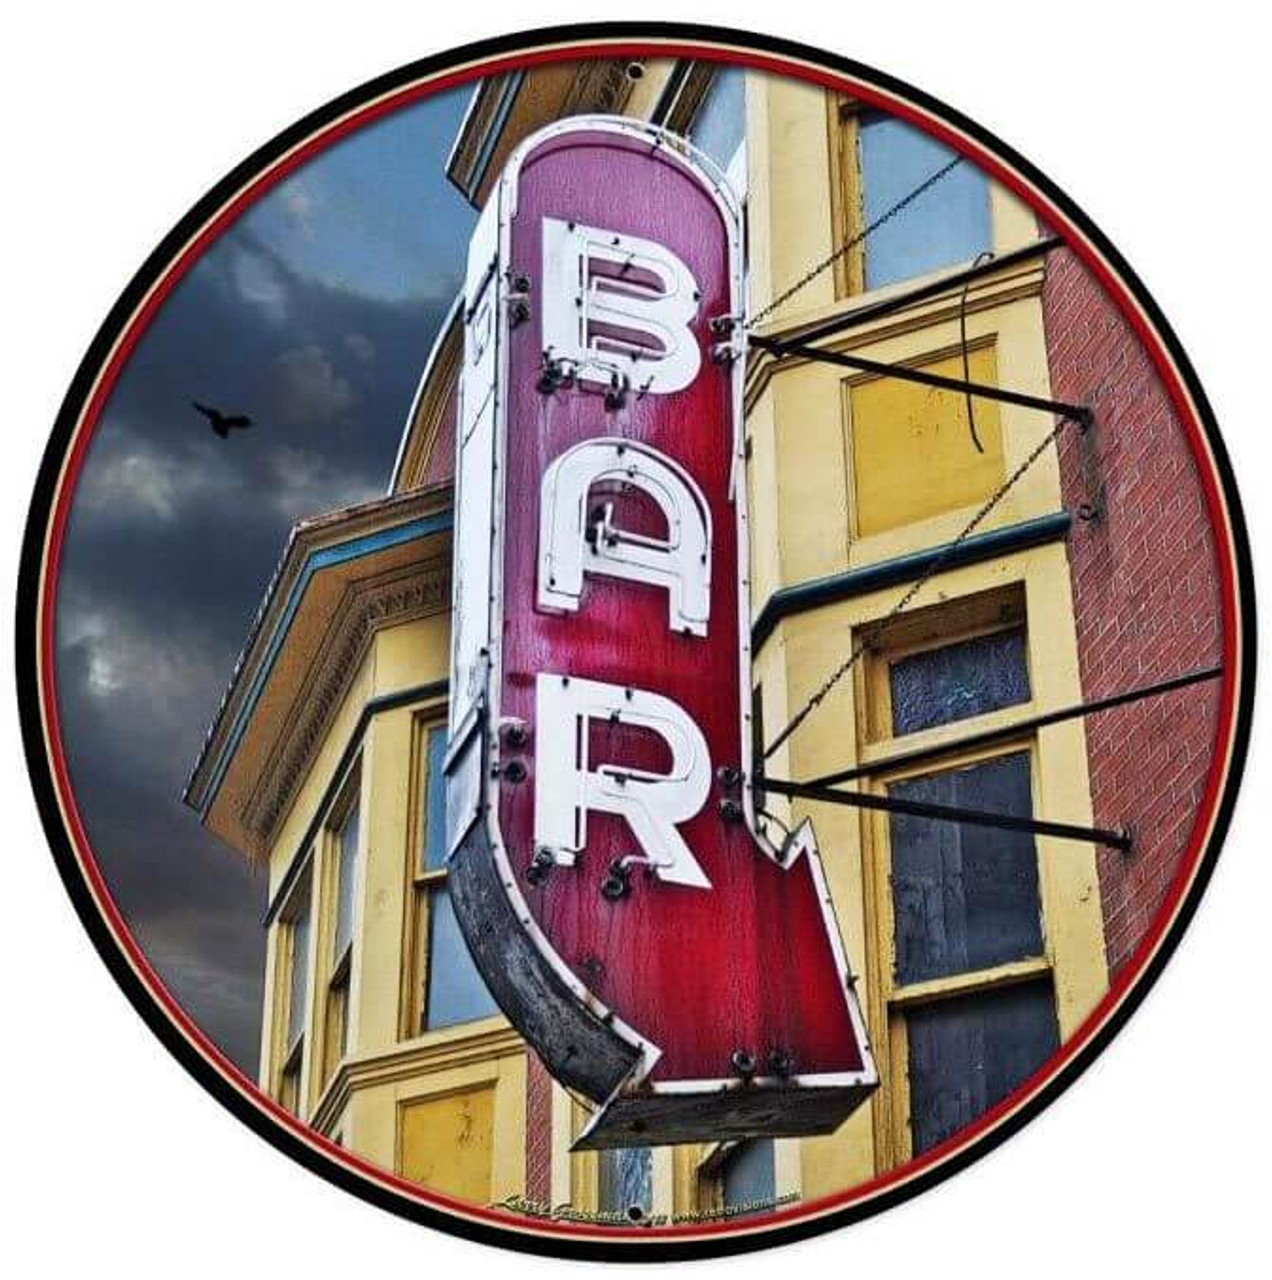 Bar Round Metal Sign  28 x 28 Inches